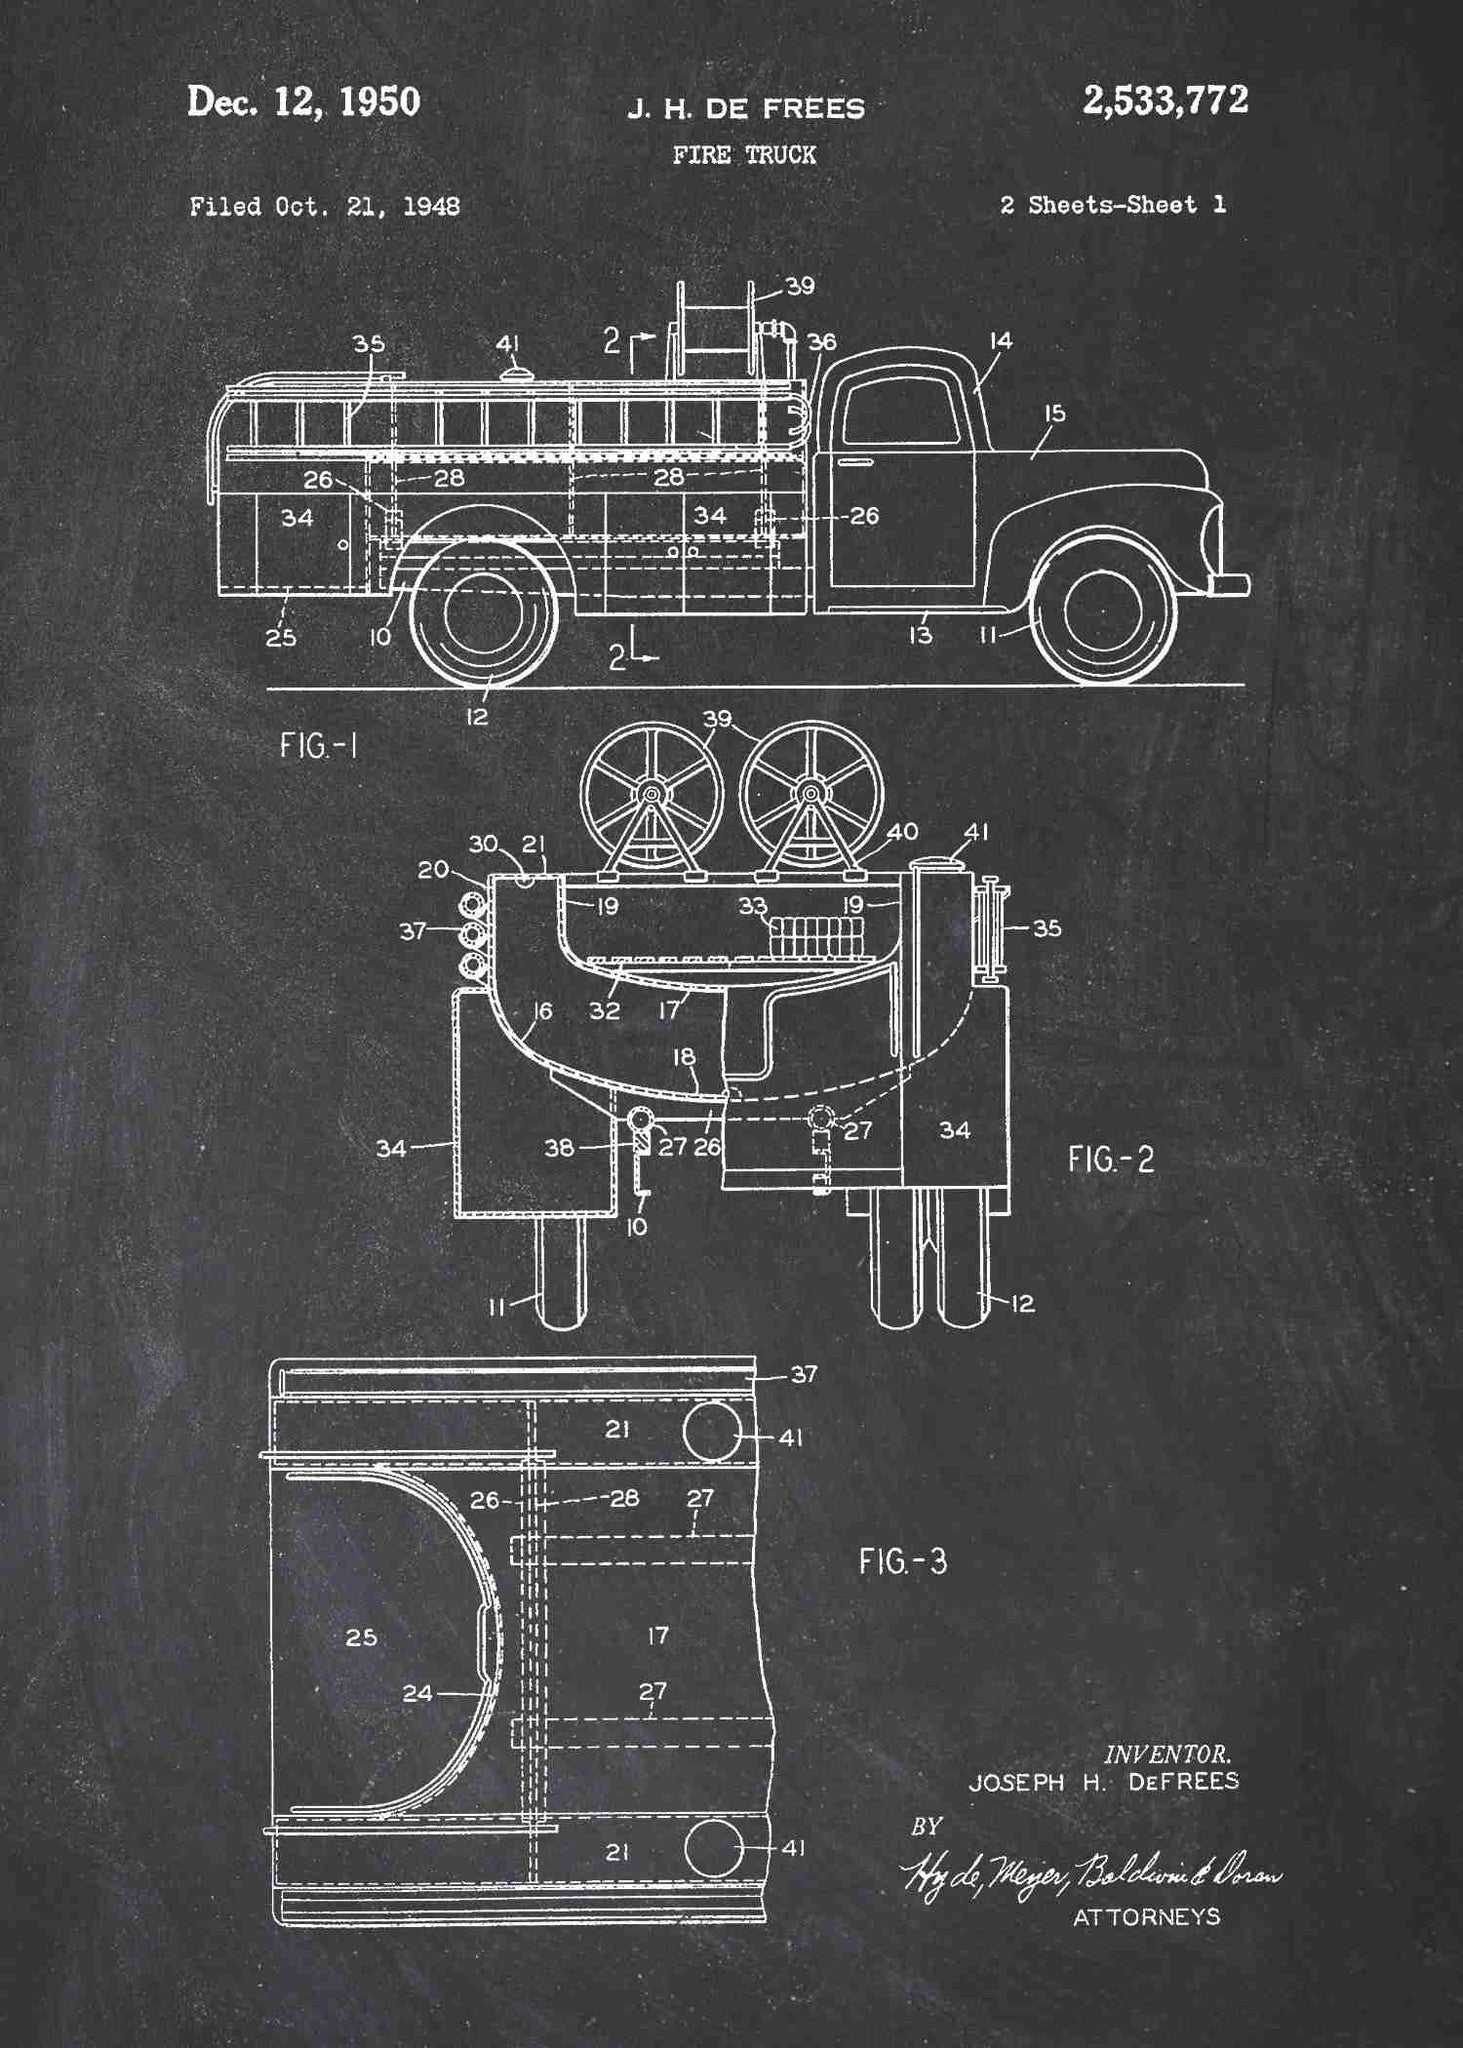 Fire Truck Schematic Electrical Wiring Diagrams Diagram Of Pierce Engine Schematics Posters Work U2022 Dvr